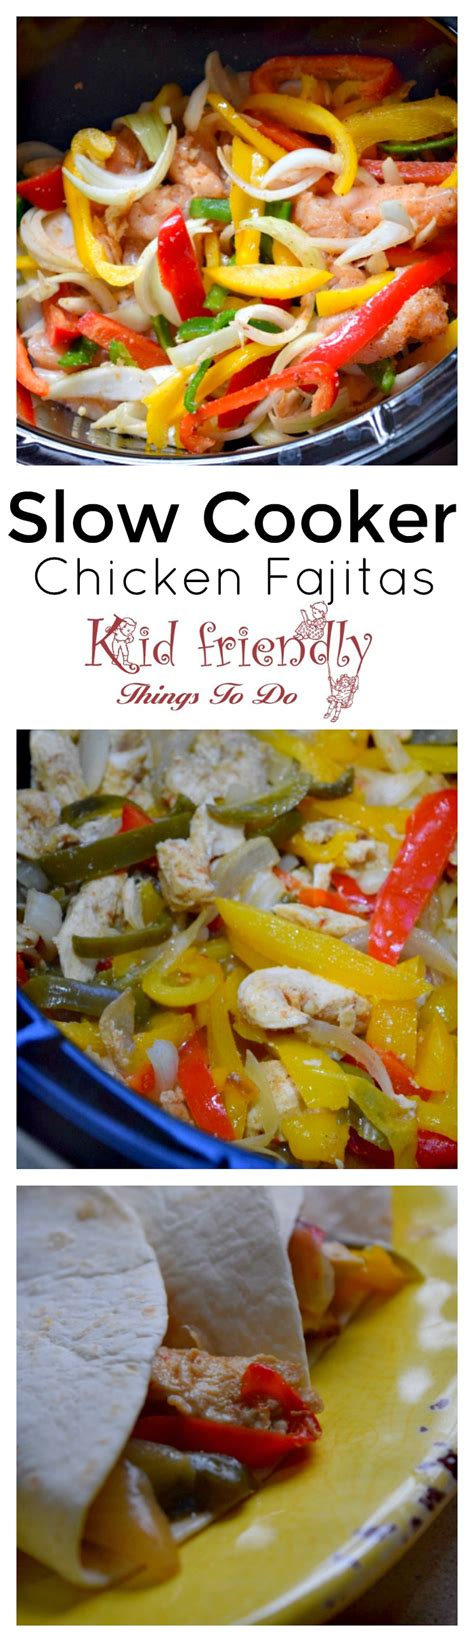 40 easy slow cooker recipes for busy nights best crock easy and delicious slow cooker chicken fajitas recipe